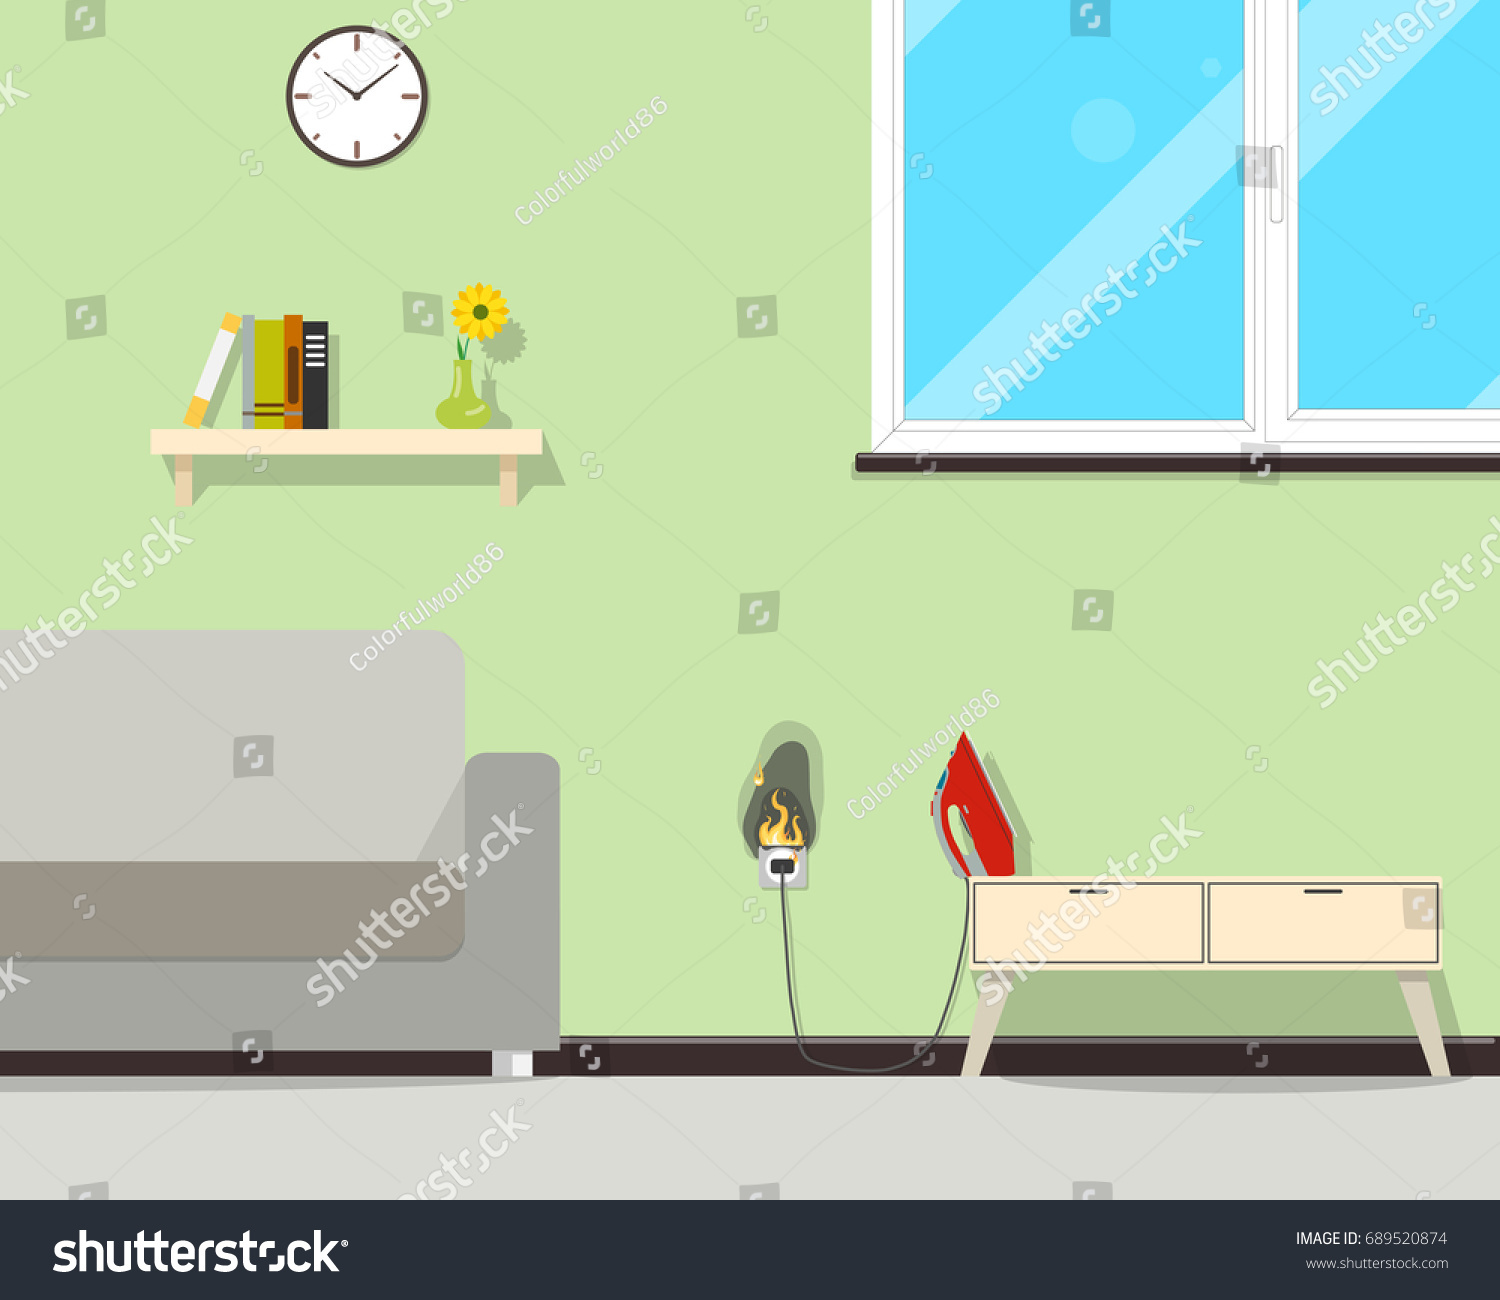 Because High Voltage On Network Wiring Stock Vector Royalty Free Diagram Room Of The In House Caught Fire